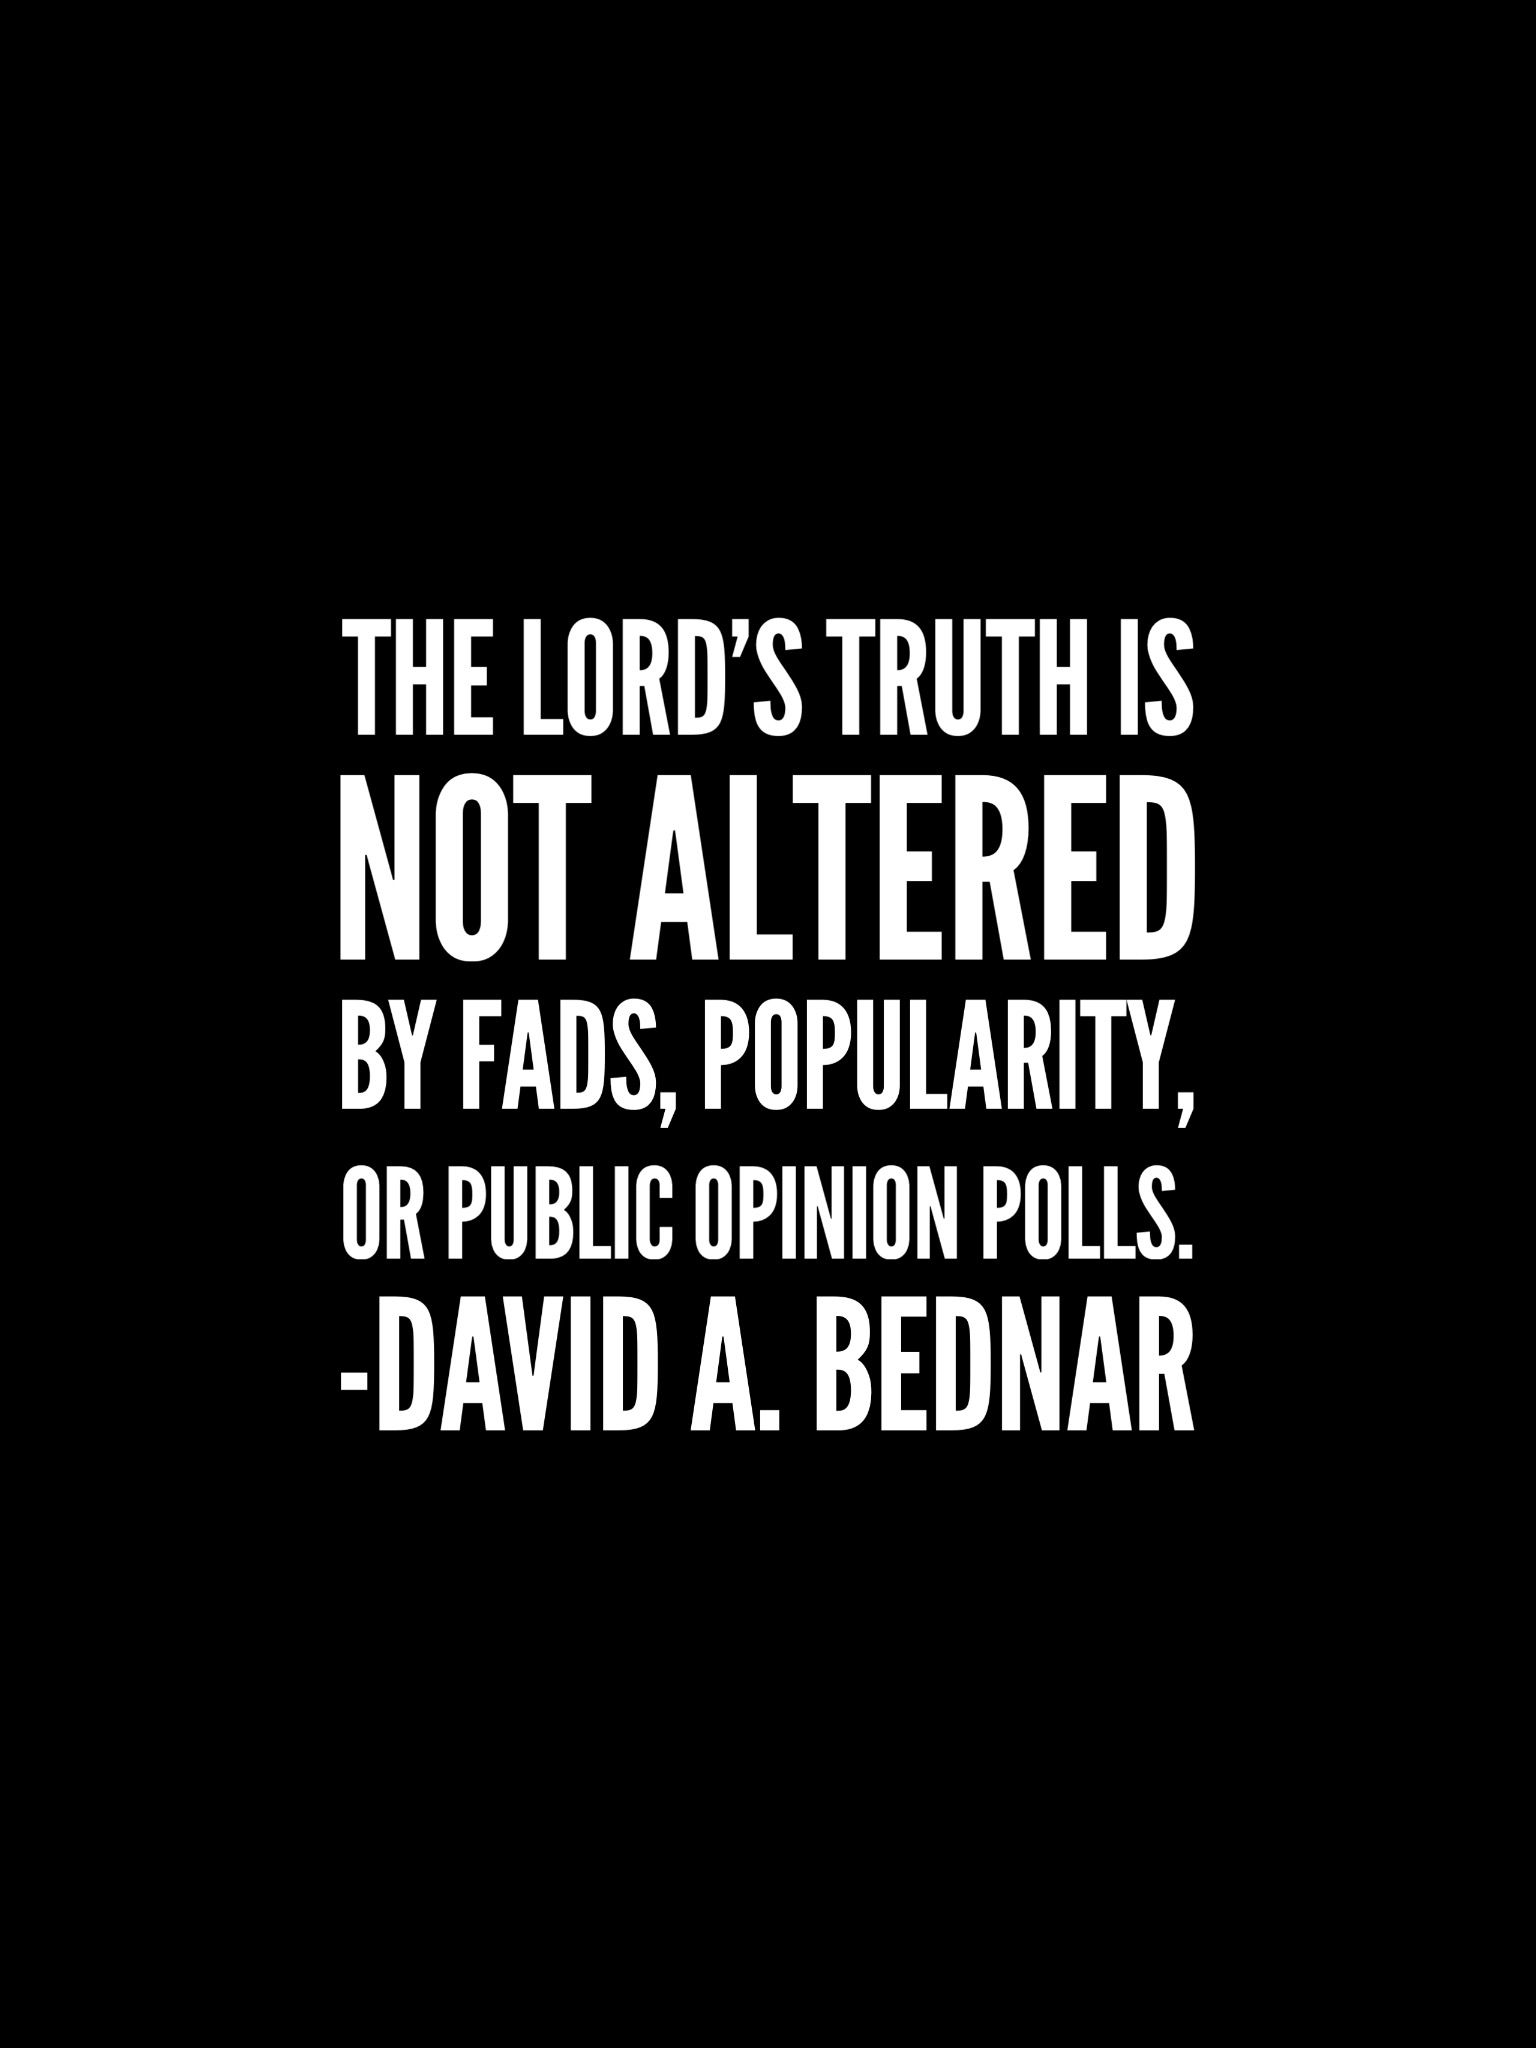 Churchofjesuschrist Jesus Christ Christian Comefollowme Elderbednar The Lord S Truth Is Not Altered By Fads P Church Quotes Lds Quotes Spiritual Quotes